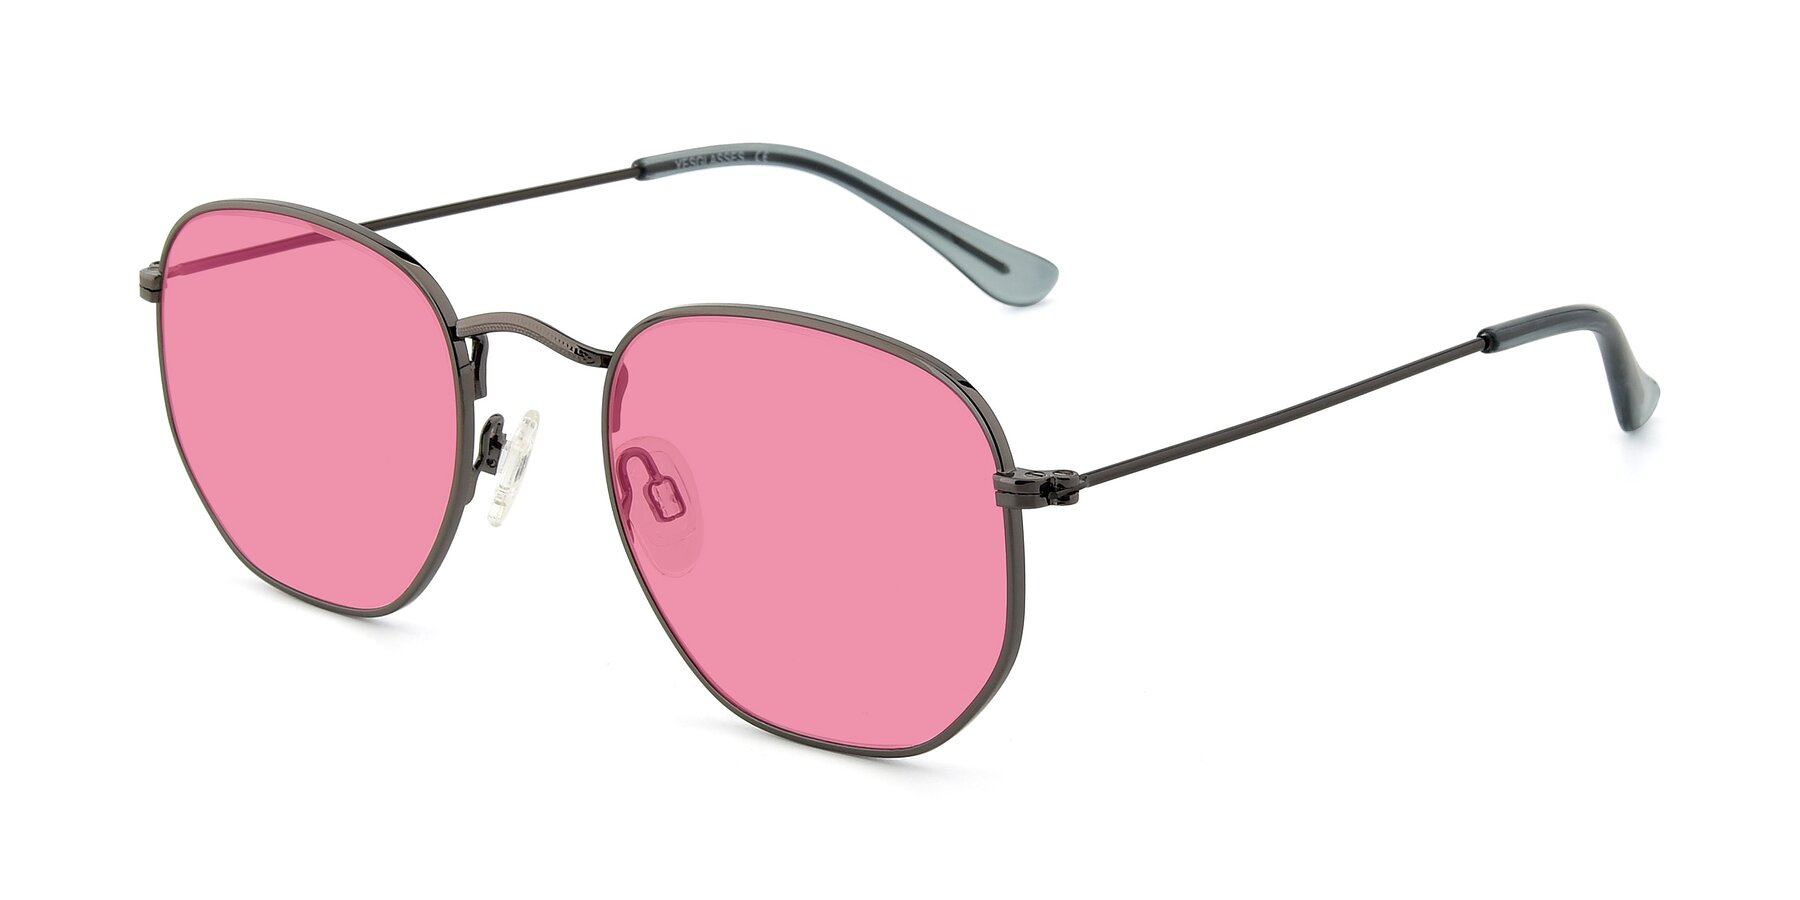 Angle of SSR1944 in Grey with Pink Tinted Lenses